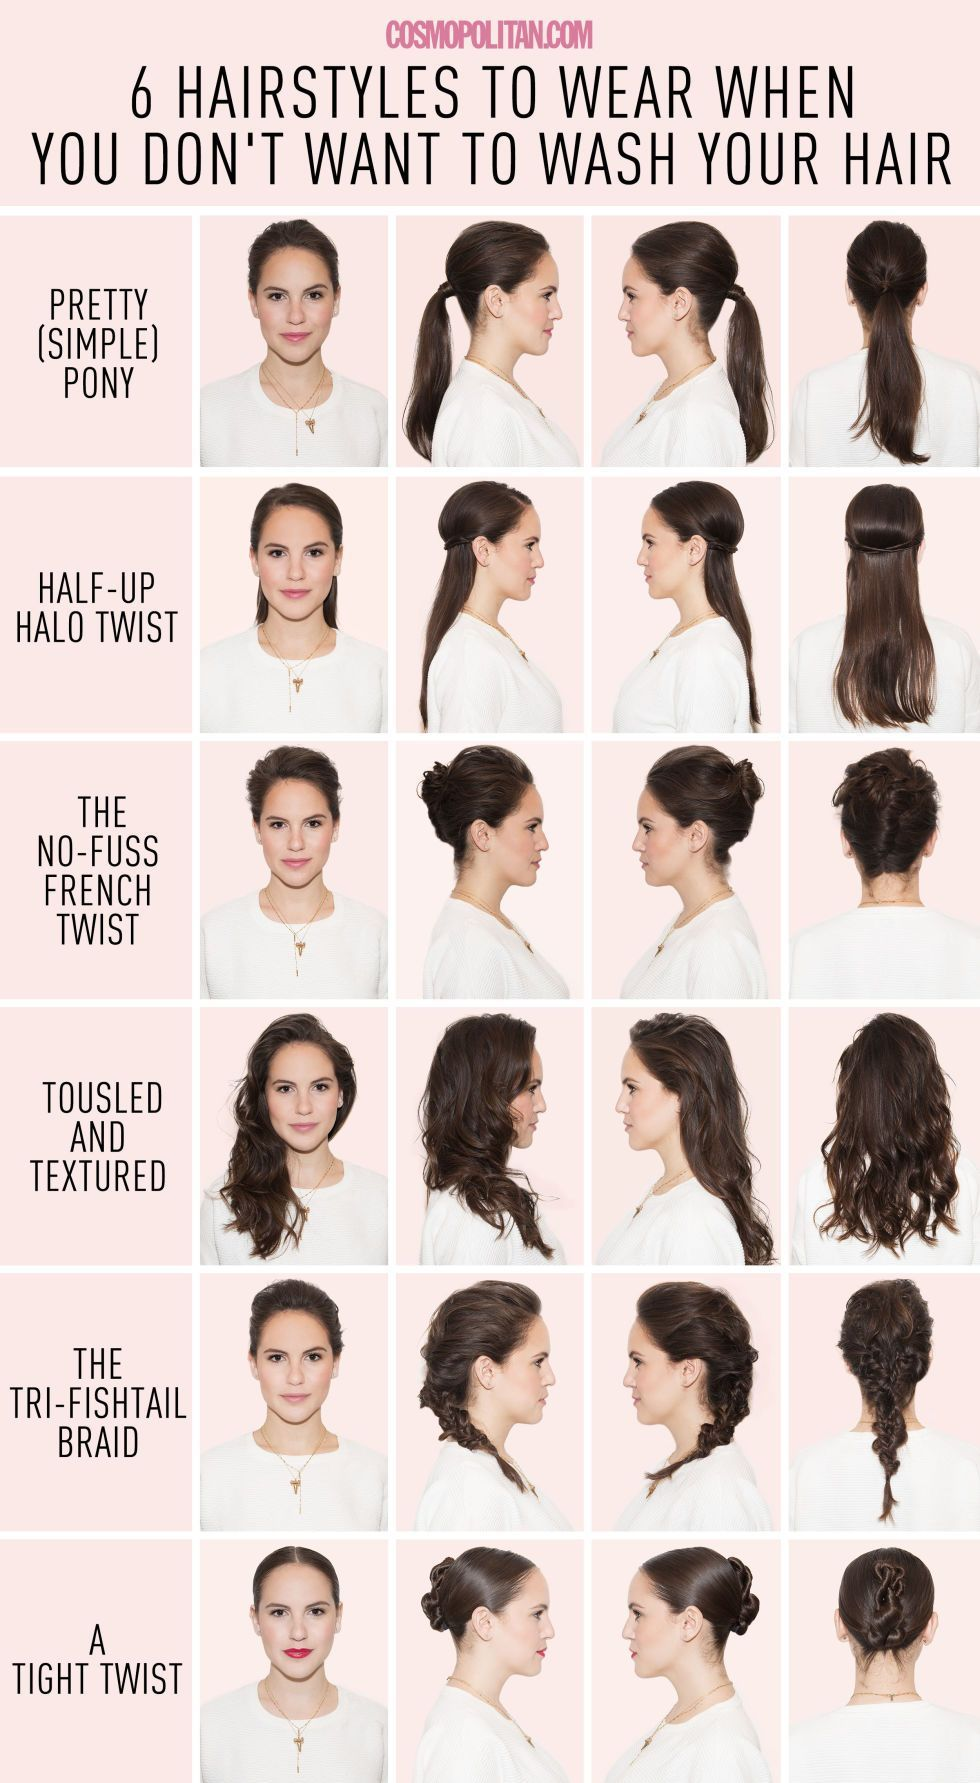 hairstyles for when you just canut wash your hair hair style